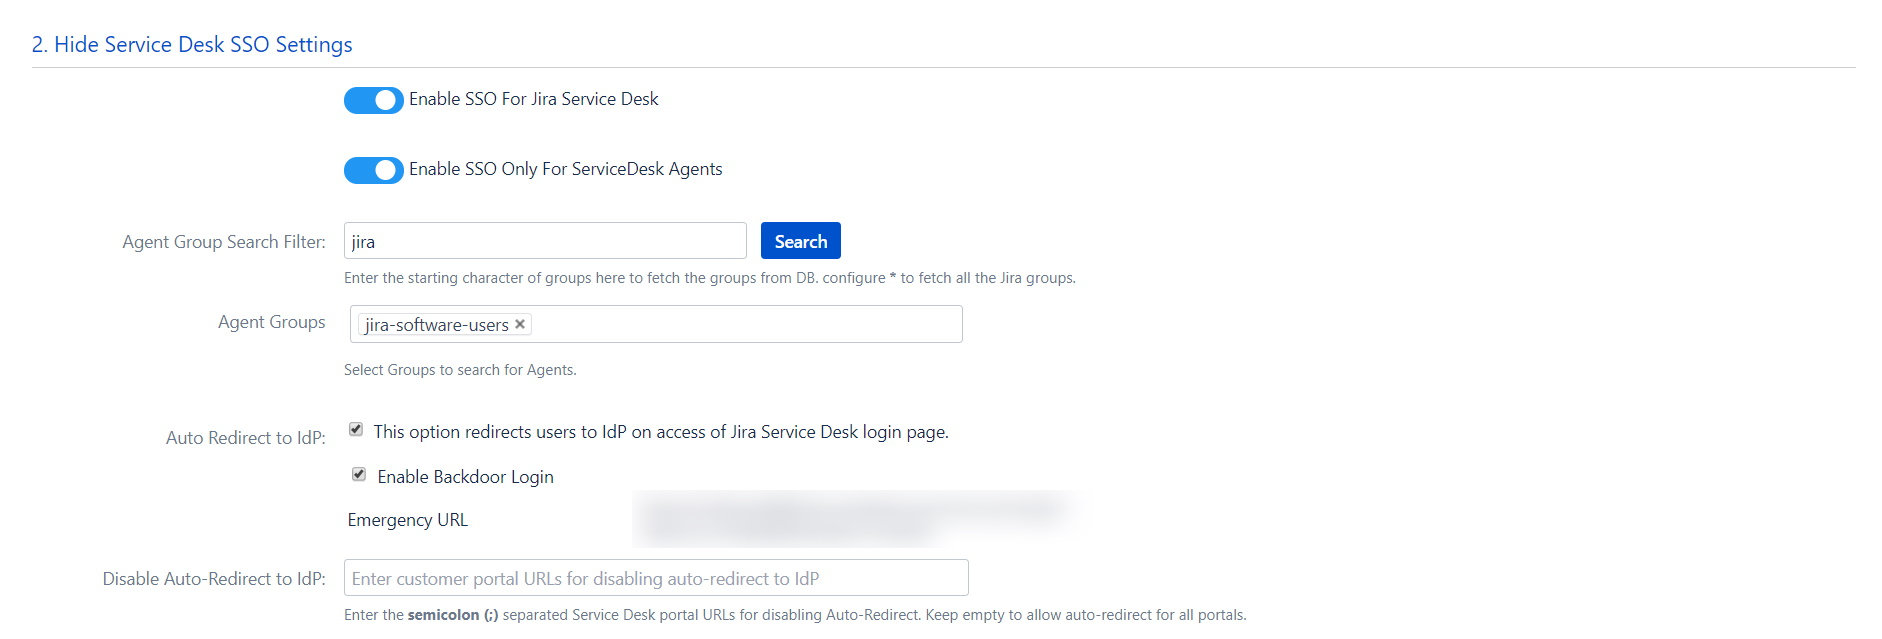 OAuth / OpenID Single Sign On (SSO) into Jira, Service Desk Settings